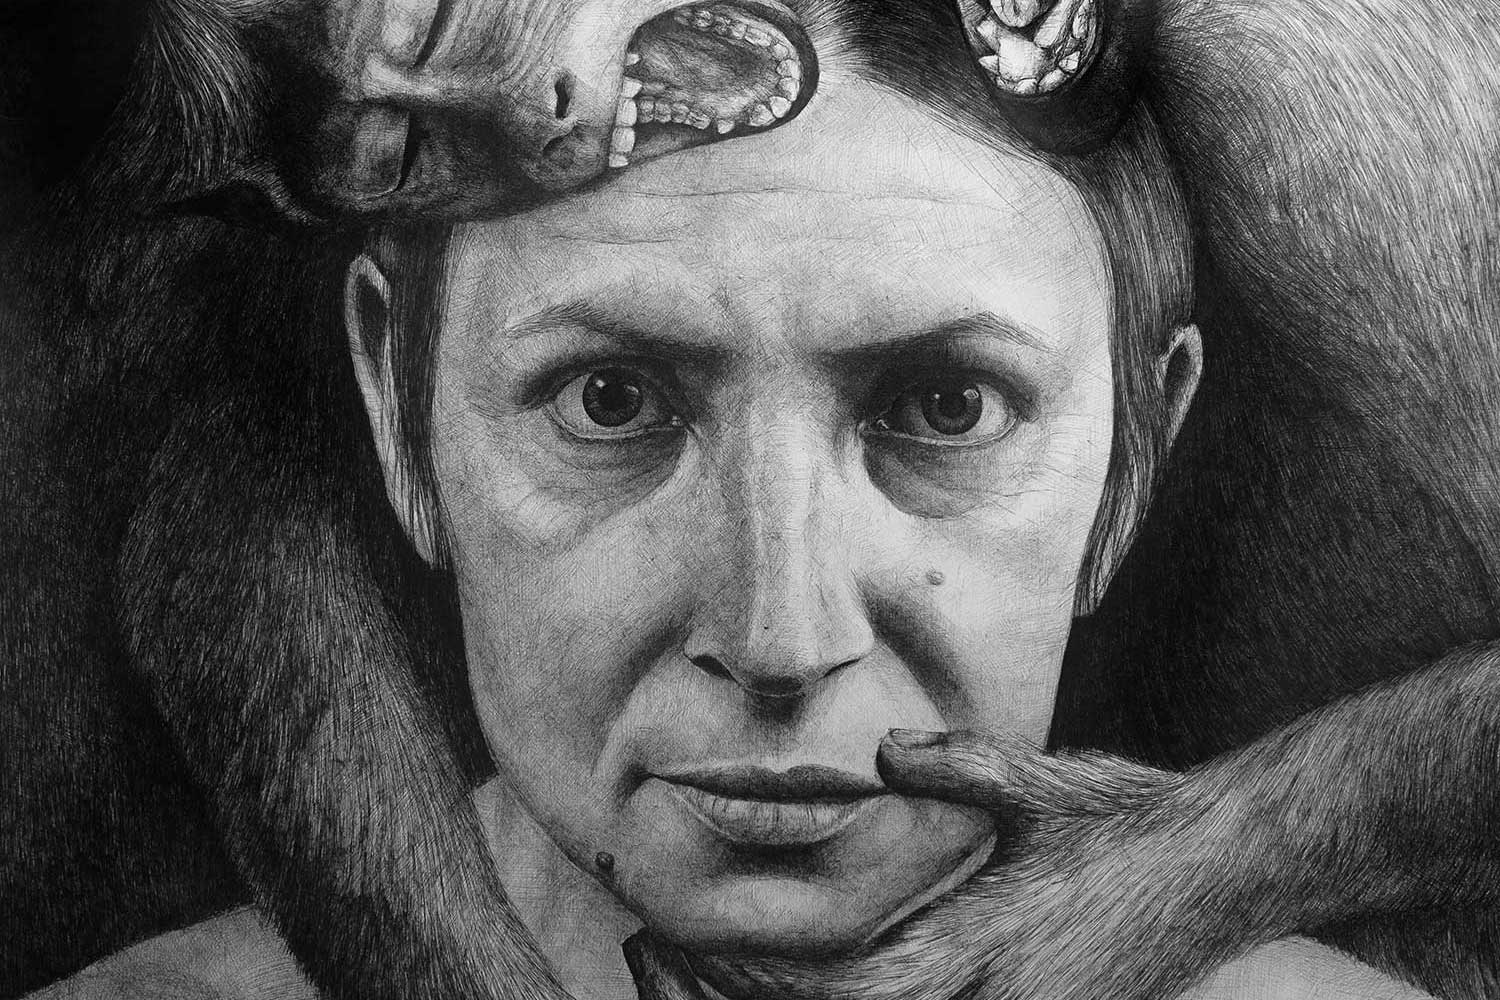 Self-Portrait with Monkeys  by Pausha Foley, 2019, pen and ink on paper, Collection of the artist.